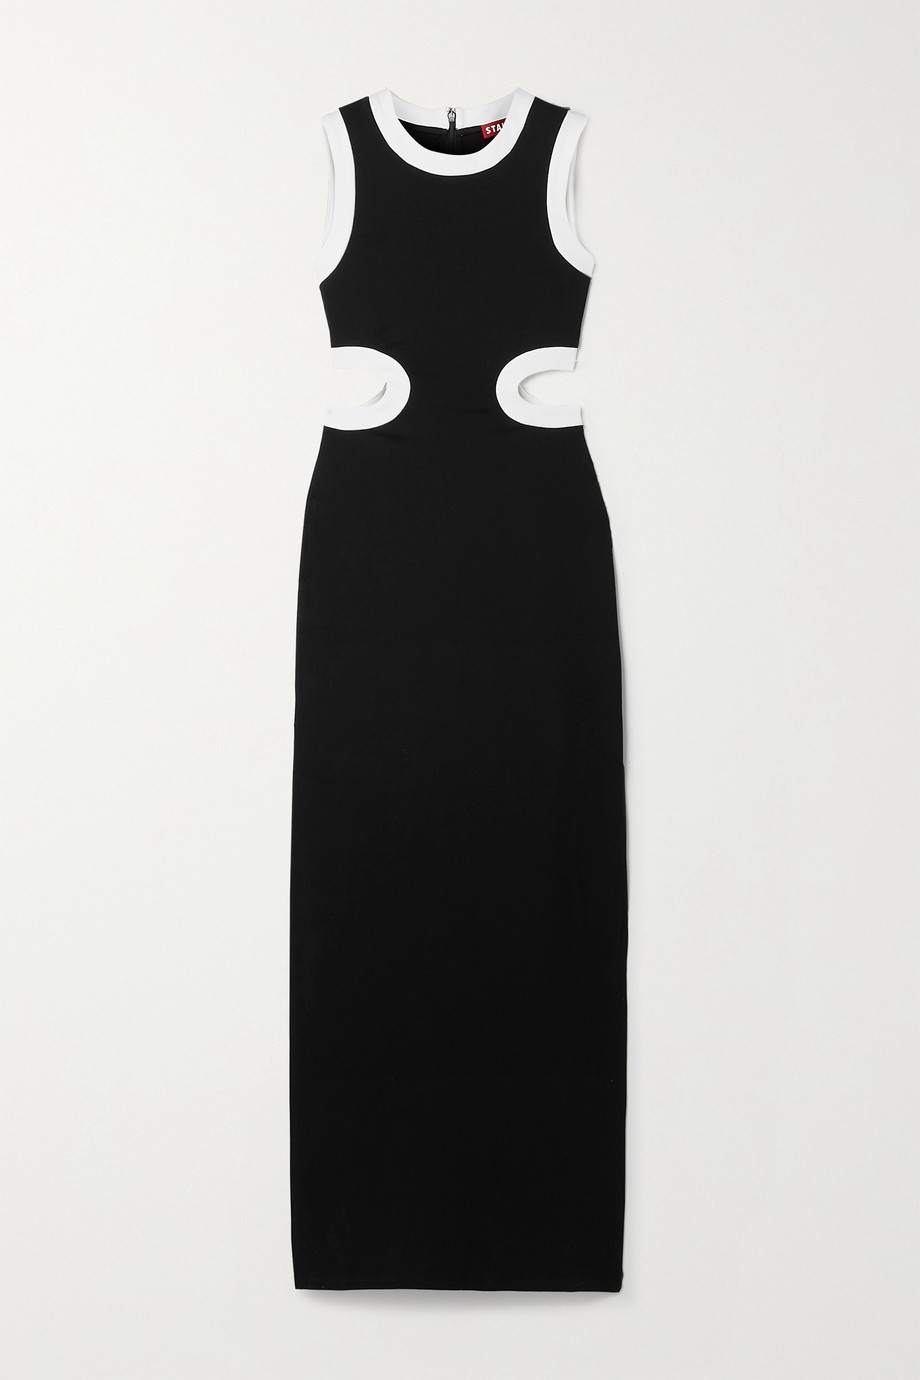 STAUD Dolce cutout two-tone stretch-jersey maxi dress